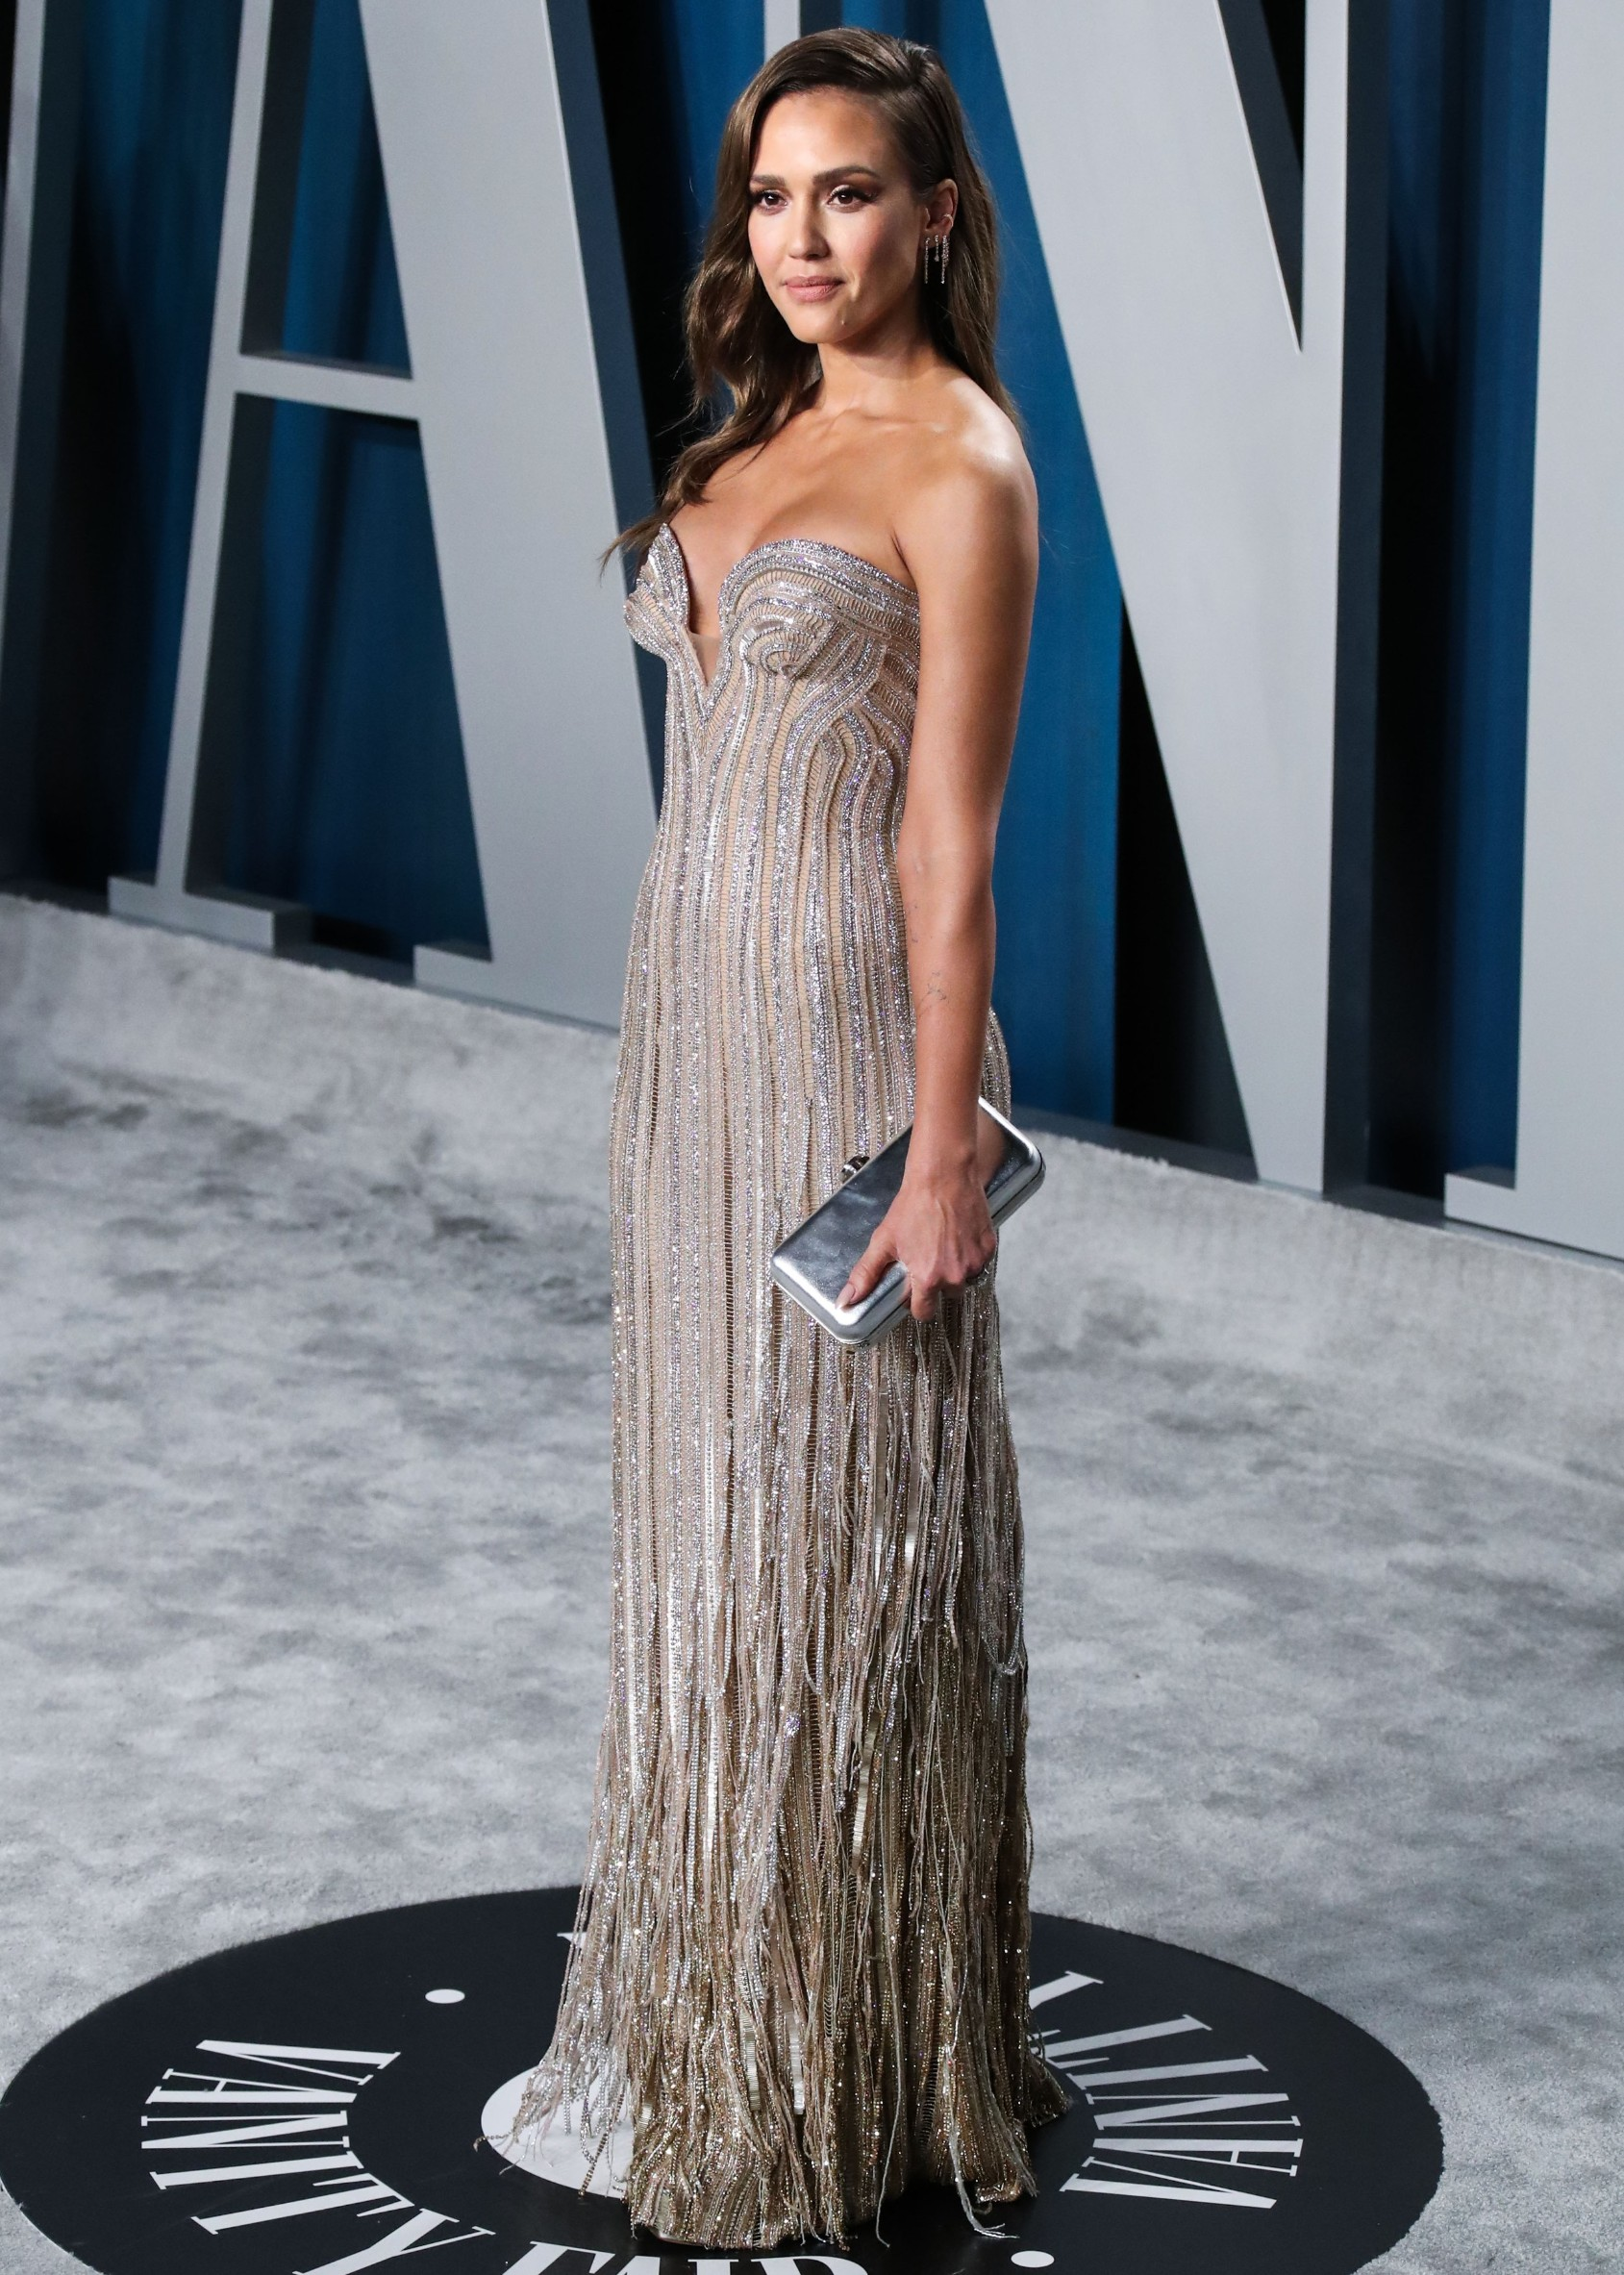 Jessica Alba arrives at the 2020 Vanity Fair Oscar Party held at the Wallis Annenberg Center for the Performing Arts on February 9, 2020 in Beverly Hills, Los Angeles, California, United States.,Image: 497703672, License: Rights-managed, Restrictions: WORLD RIGHTS - Fee Payable Upon Reproduction - For queries contact Avalon.red - sales@avalon.red London: +44 (0) 20 7421 6000 Los Angeles: +1 (310) 822 0419 Berlin: +49 (0) 30 76 212 251, Model Release: no, Credit line: Avalon.red / Avalon Editorial / Profimedia